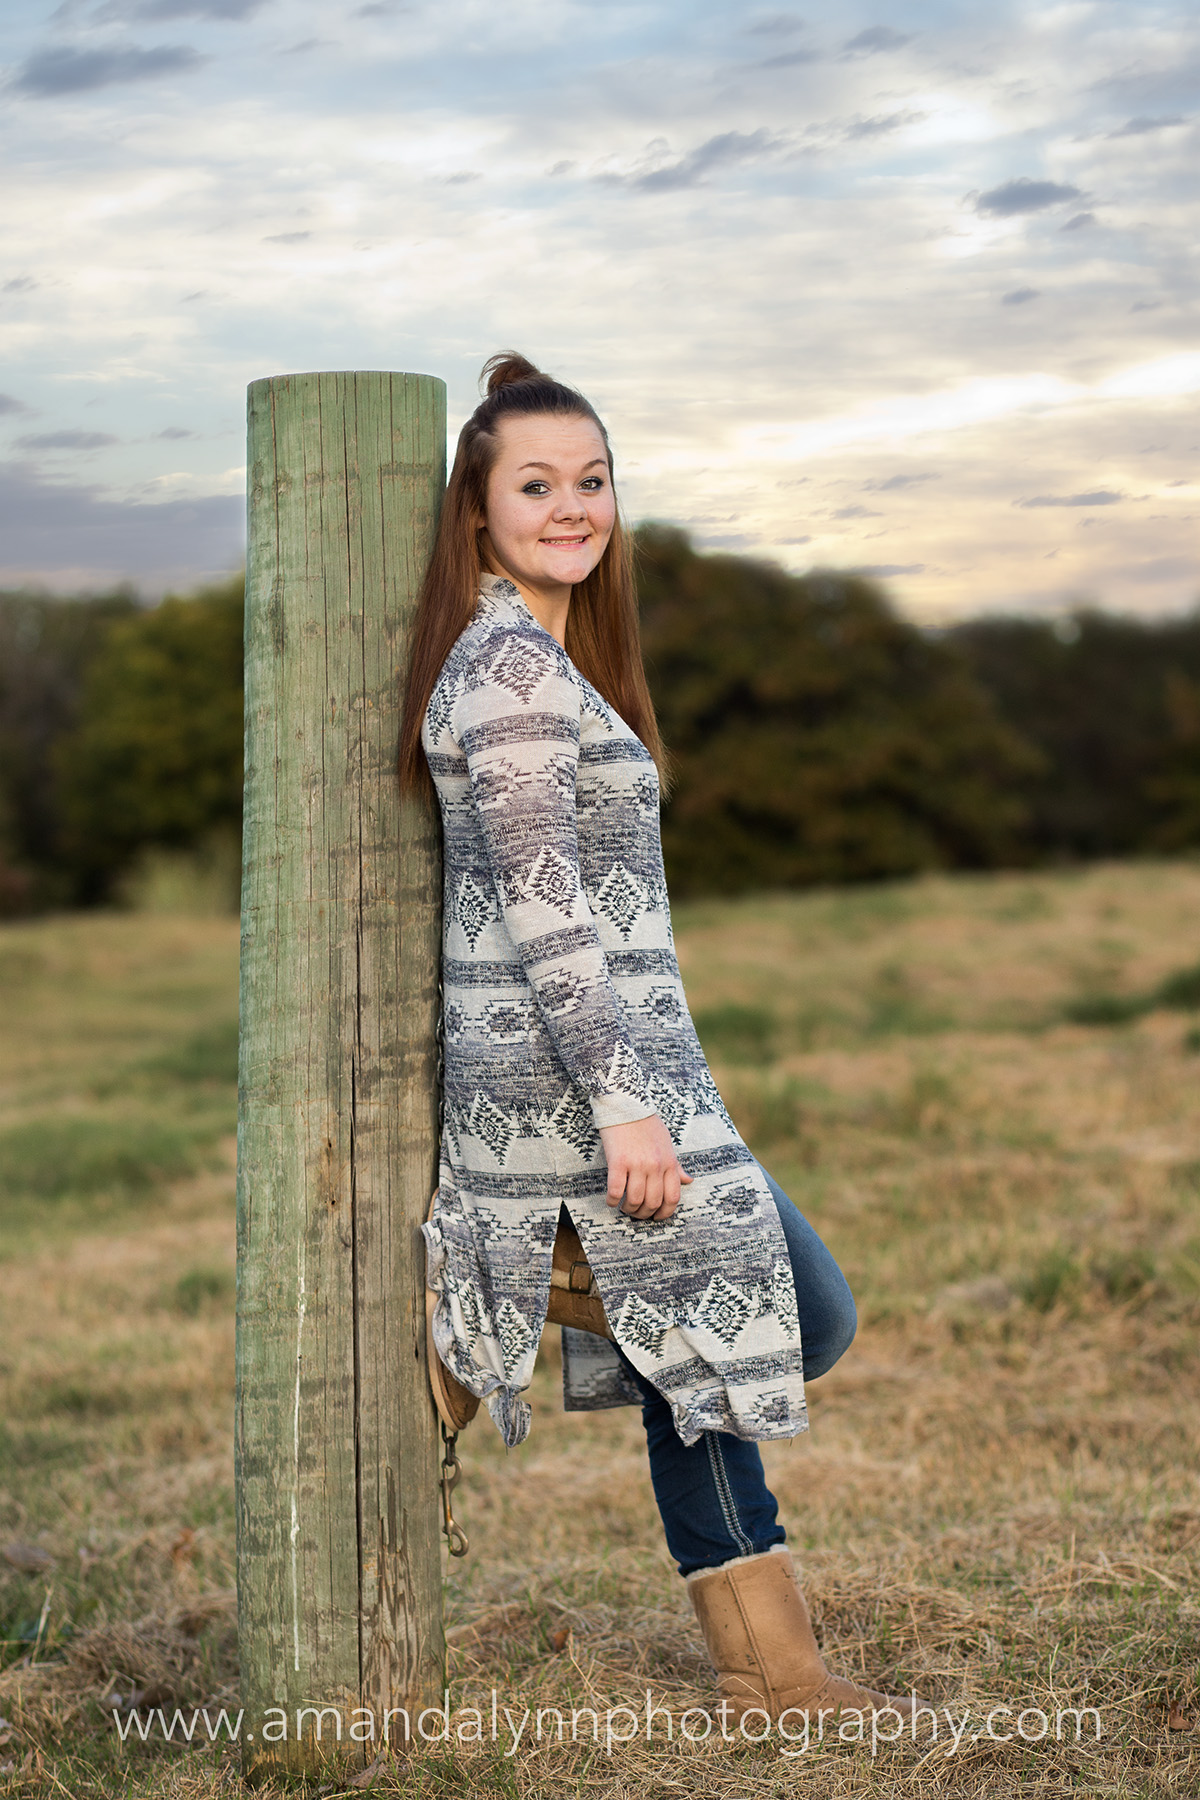 senior girl leaning on fence post in harrah oklahoma